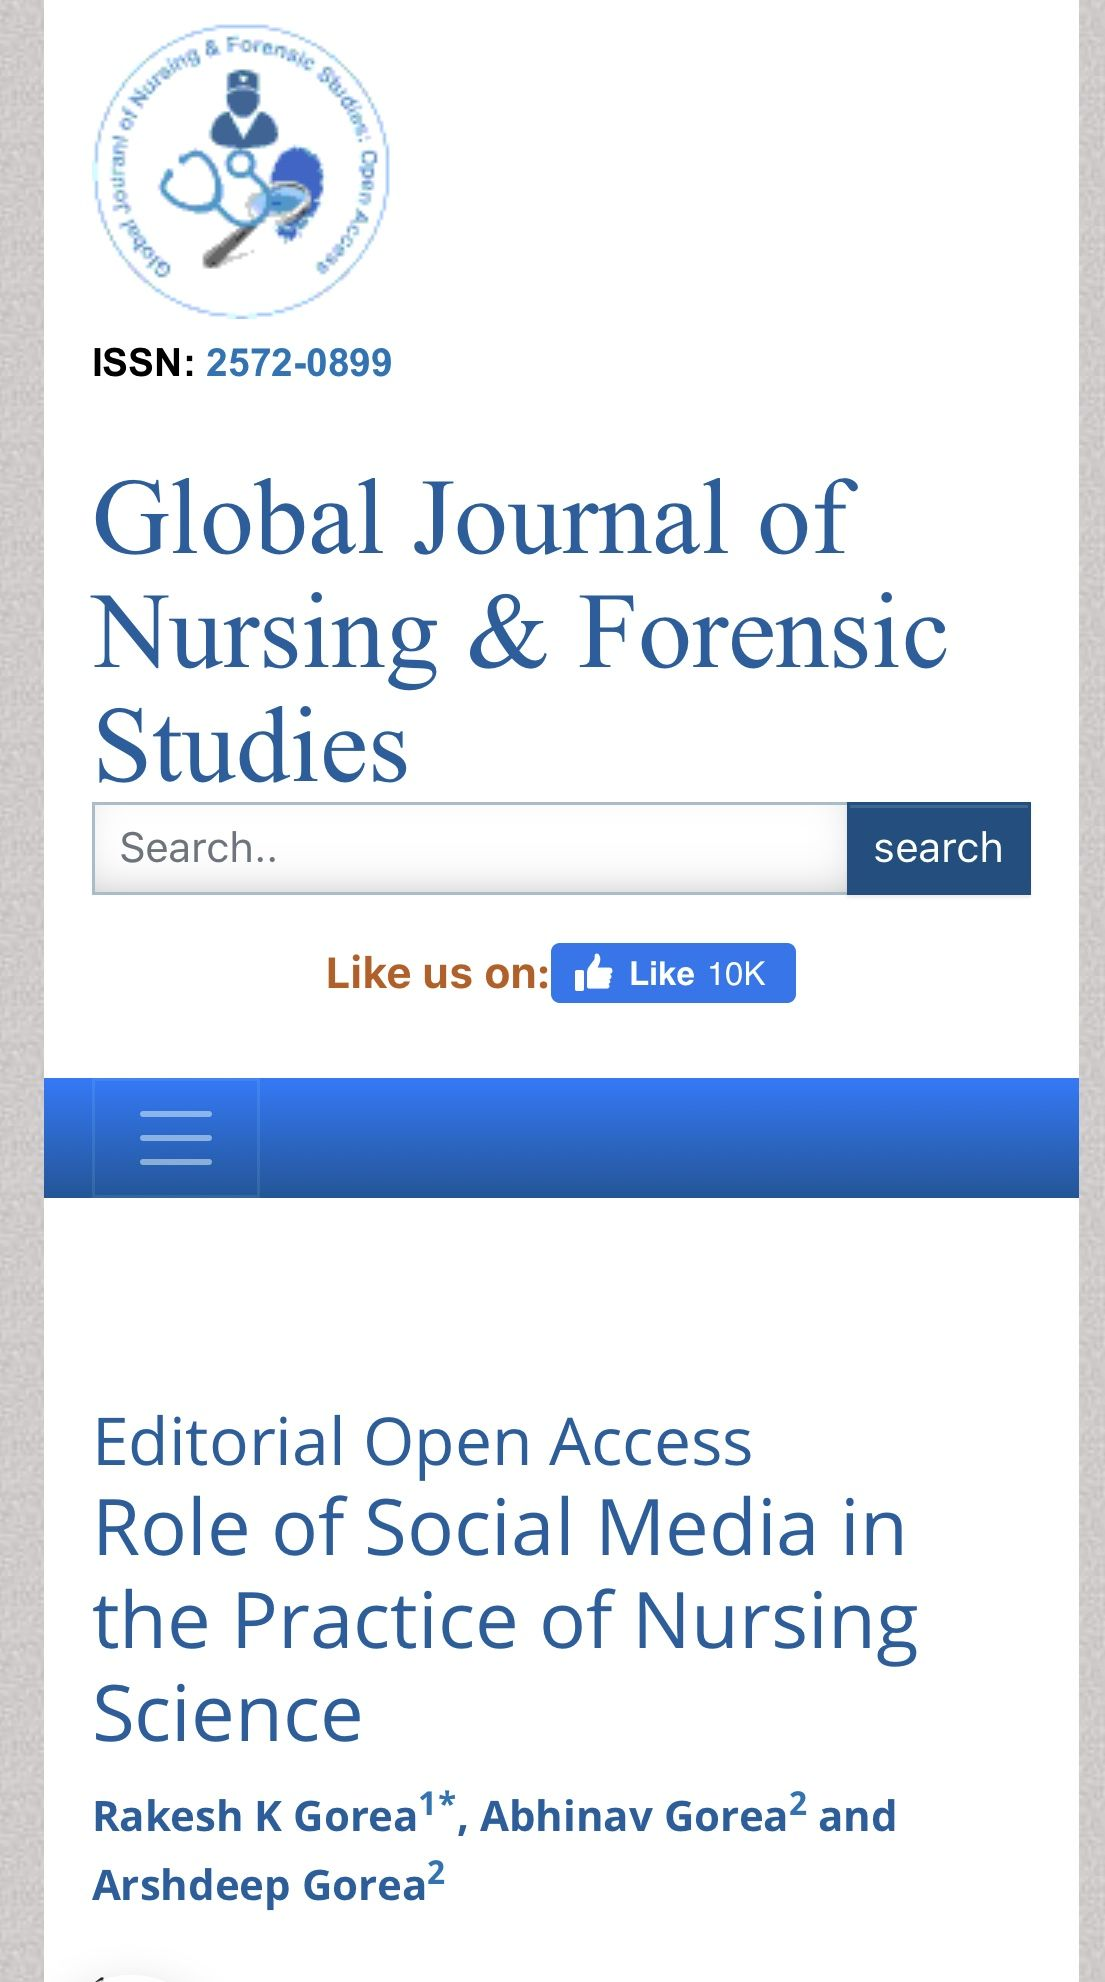 Role of Social Media in the Practice of Nursing Science